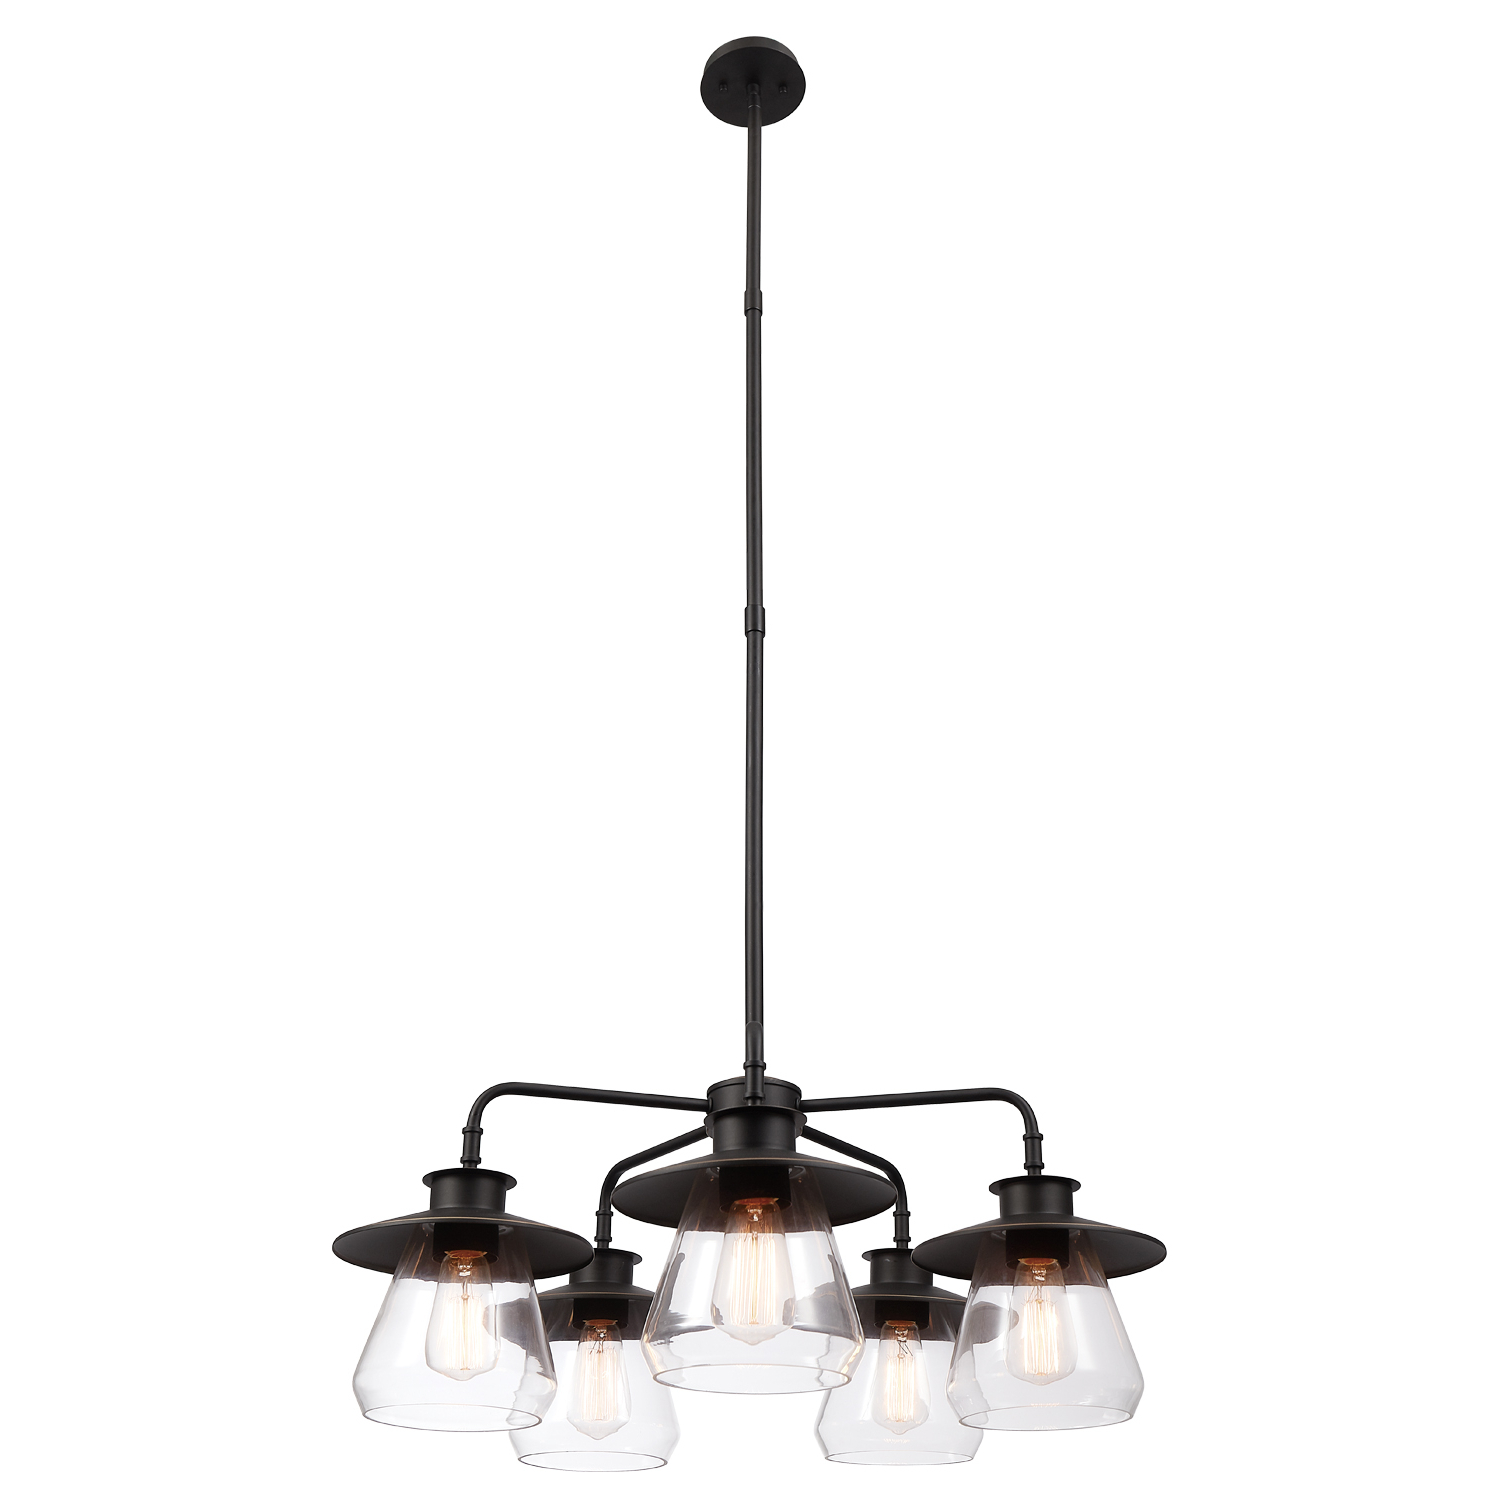 Globe Electric Nate 5 Light Oil Rubbed Bronze Chandelier With Clear Glass Shades,60471 Inside Current Novogratz Vintage 5 Light Kitchen Island Bulb Pendants (View 14 of 20)